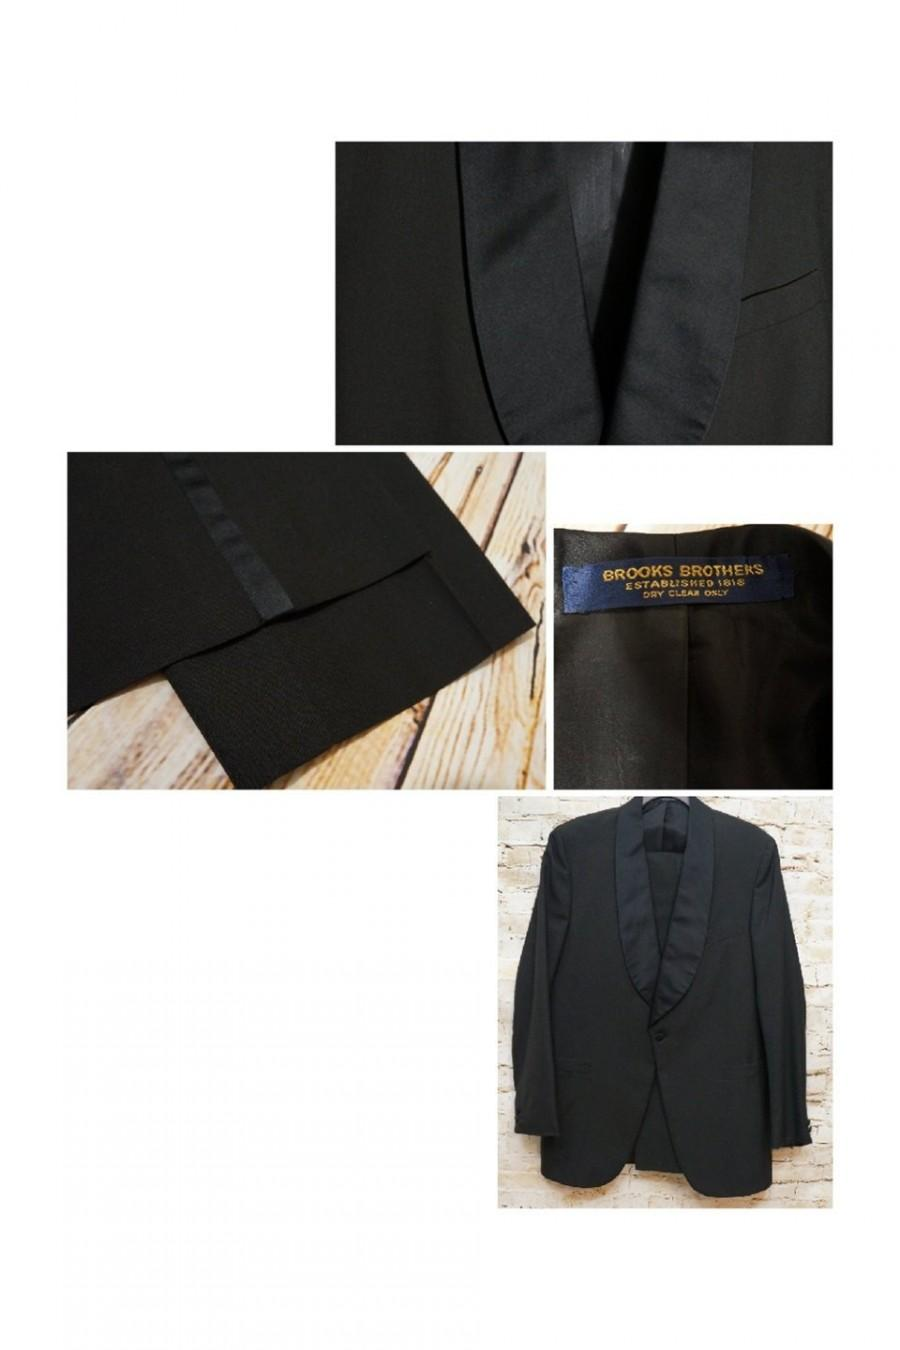 Wedding - Vintage Elegant Brooks Brothers Shawl Collar Black Full Tuxedo Suit 40L Coat Jacket and Pants